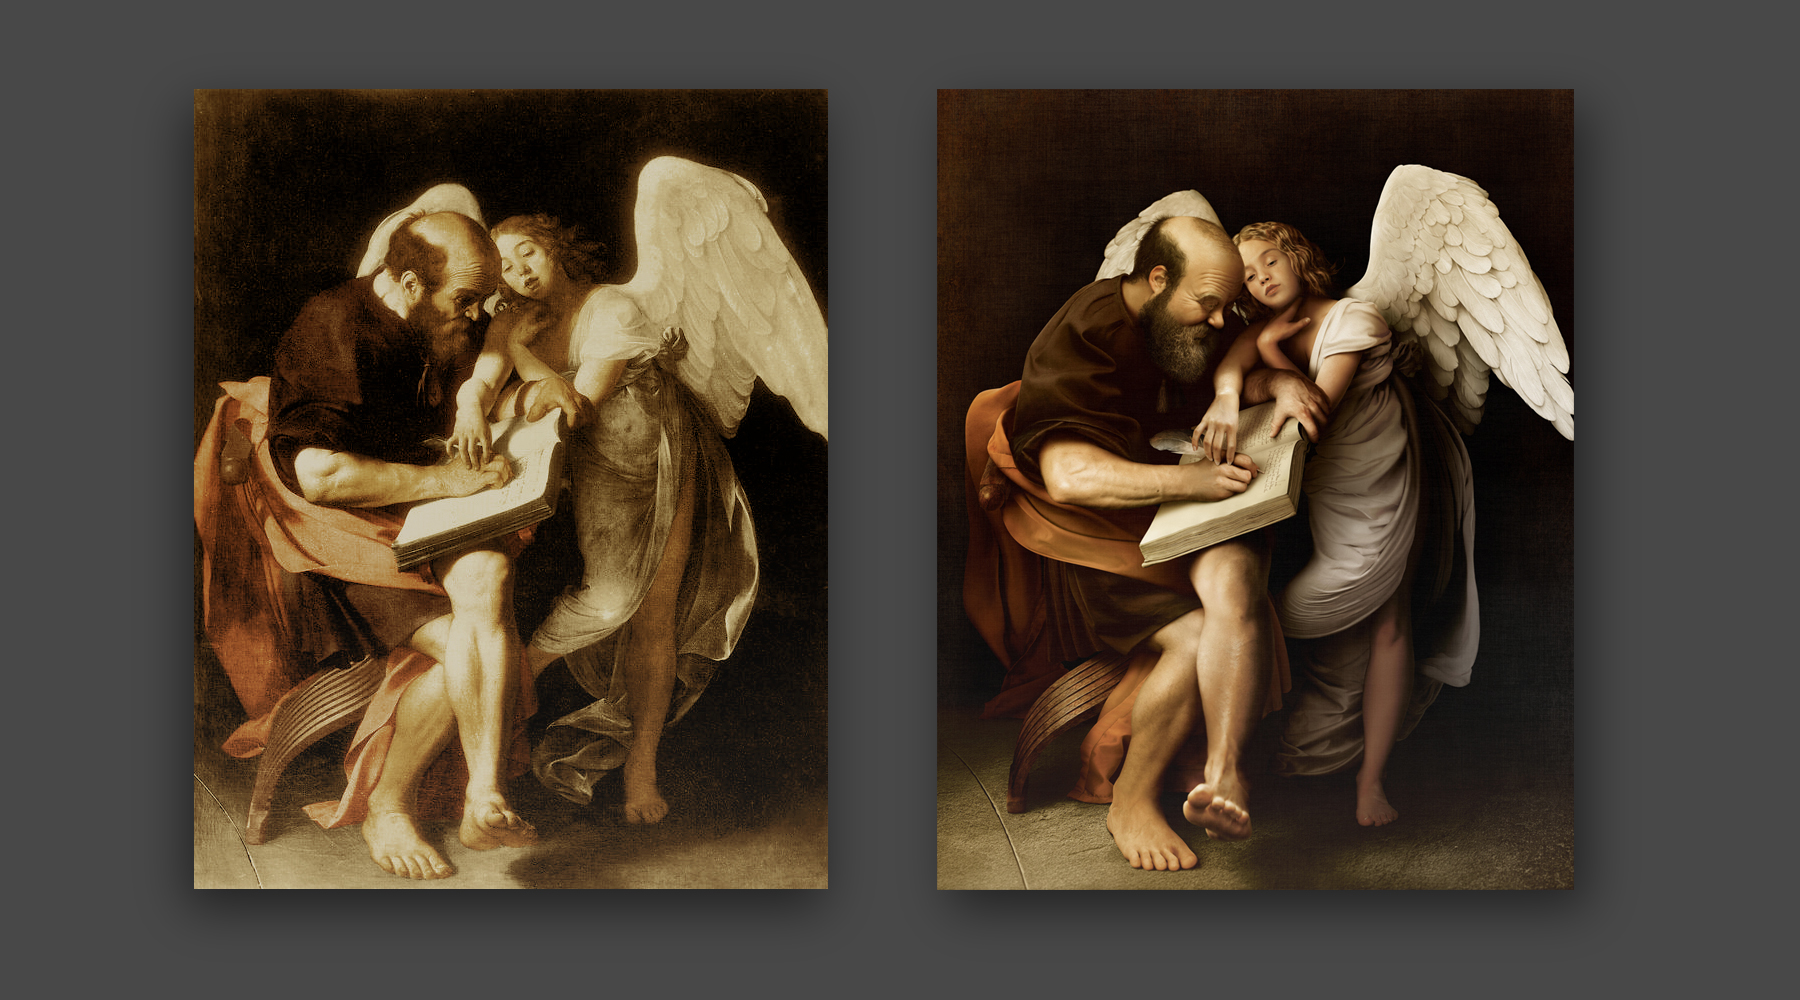 The original painting on the left, and the recreated version